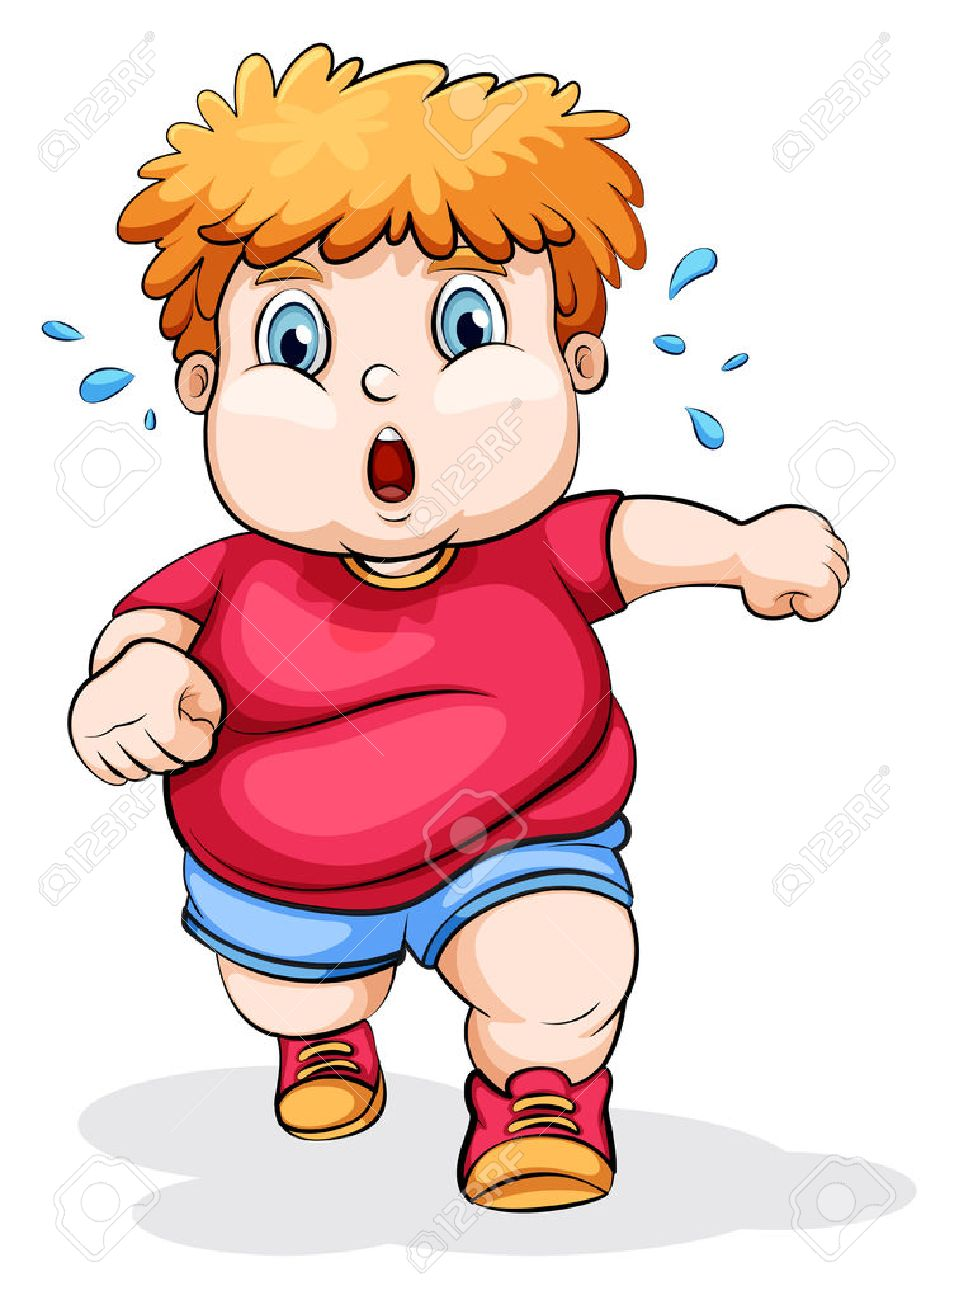 Illustration of a fat Caucasian kid running on a white background - 25210998